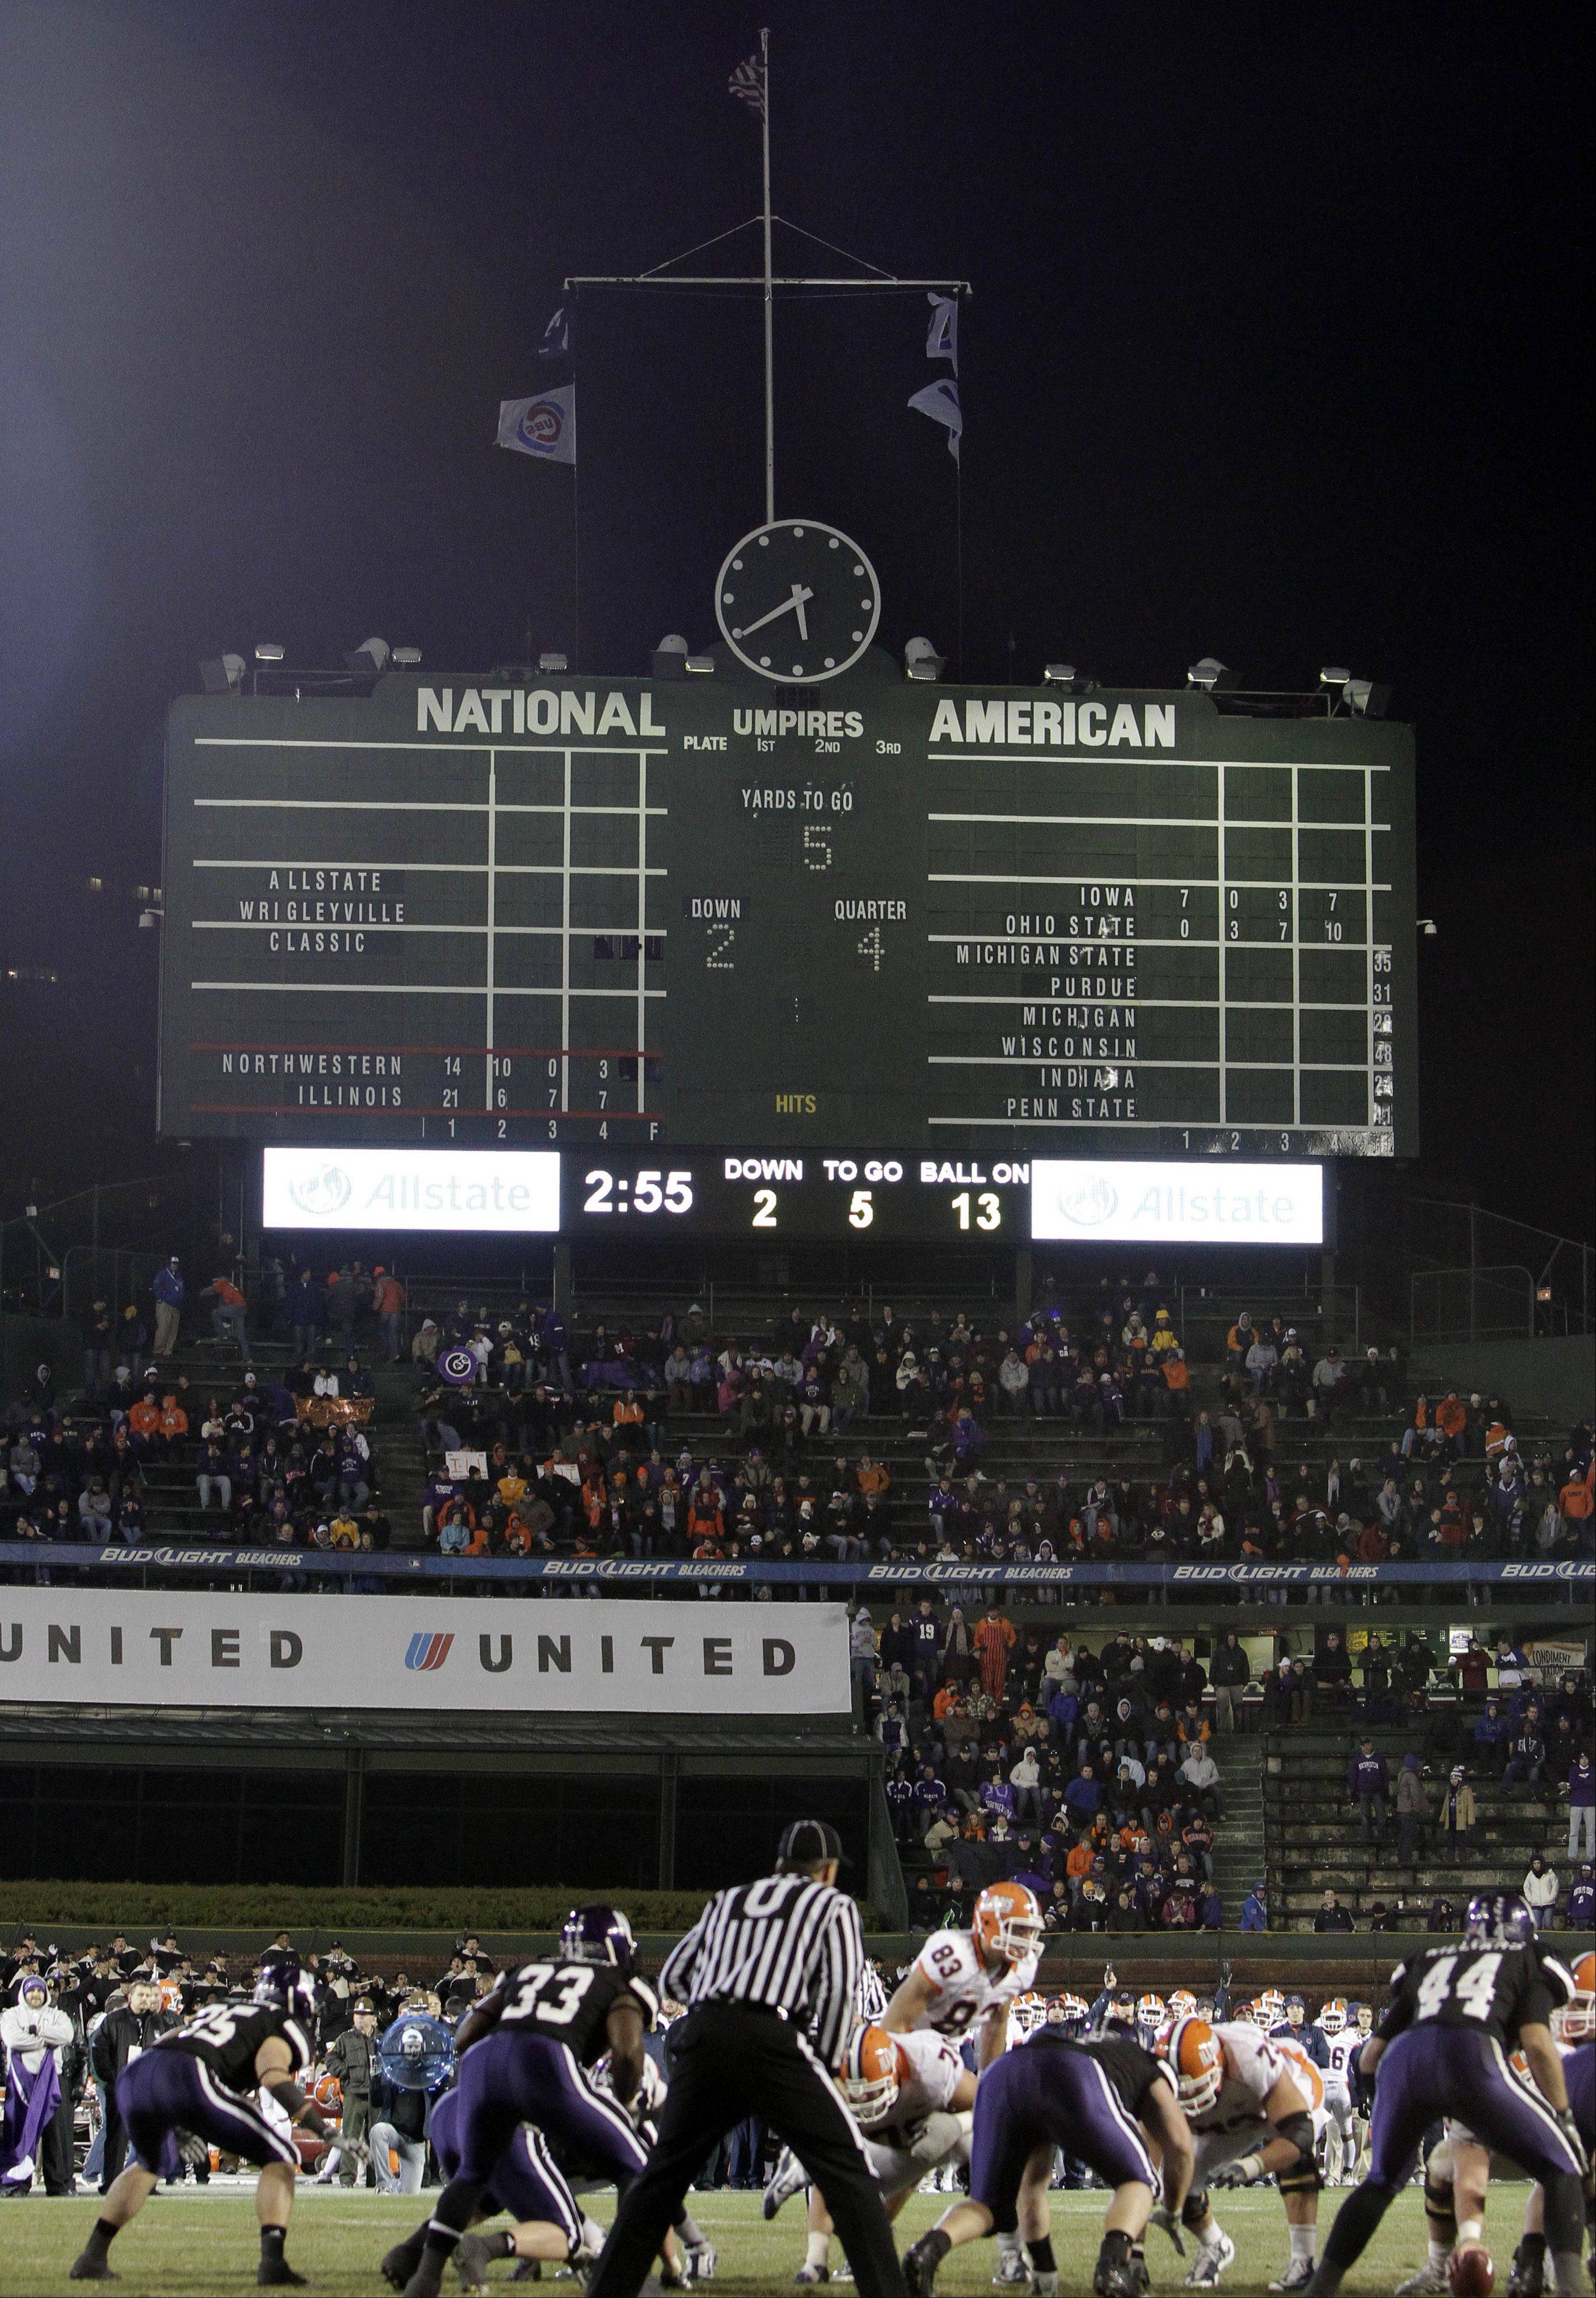 Illinois played against Northwestern at Wrigley Field in 2010. The Cubs are seeking approval to make adjustments to Wrigley so they could host more football games.